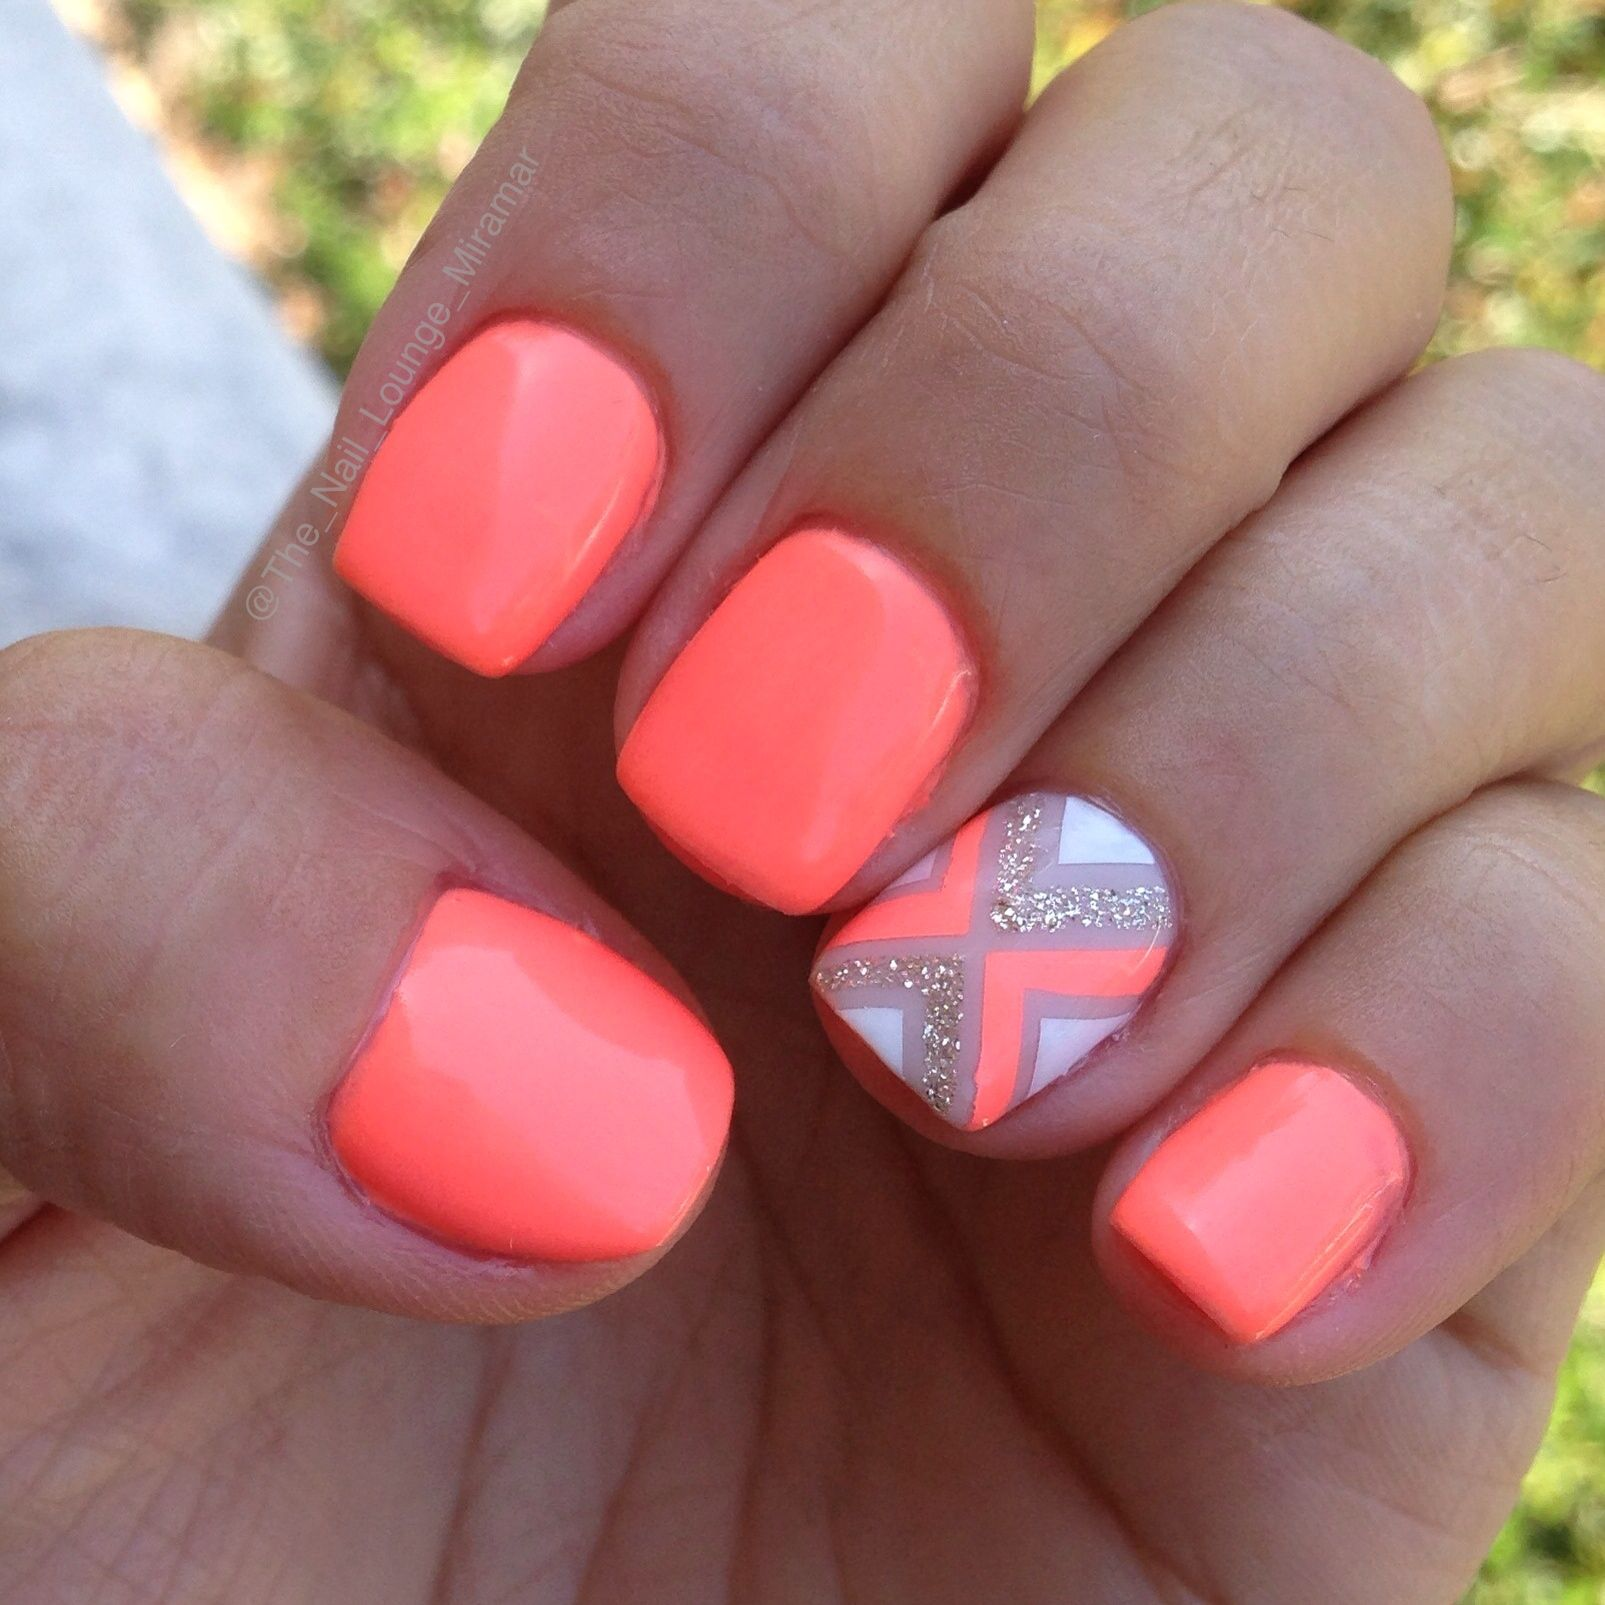 Coral nails look great with glitter. | Nails | Pinterest | Coral ...